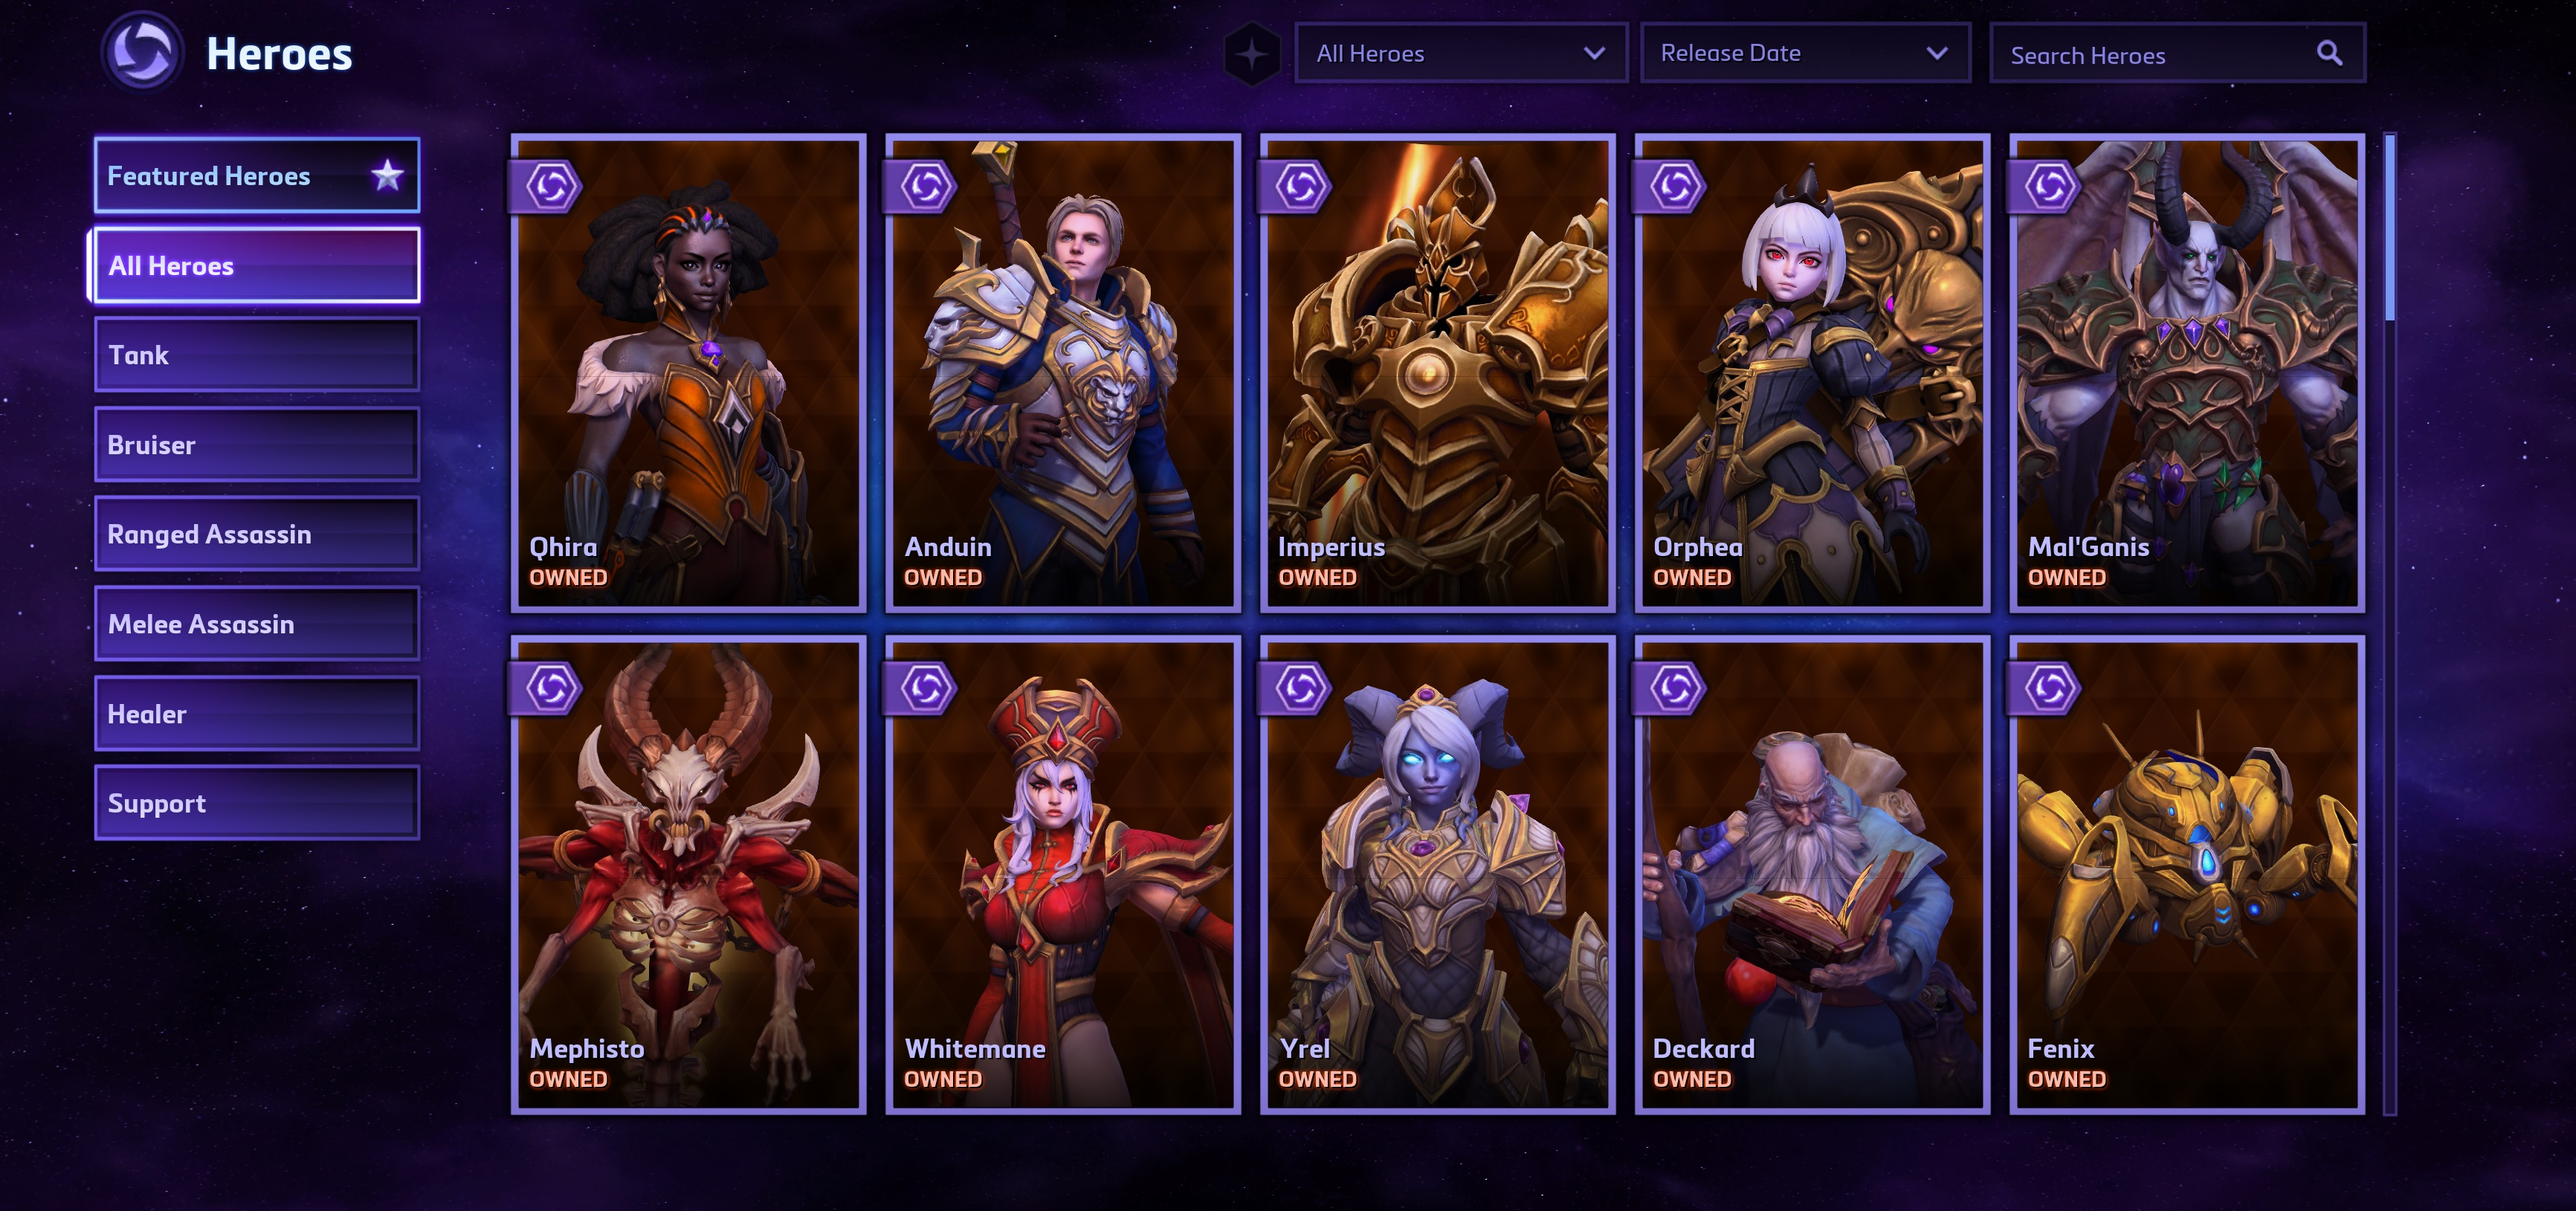 Update Every Character In Blizzard S Heroes Of The Storm Is Currently Free To Play Already #1 on hotslogs with 59.6 % win rate. heroes of the storm